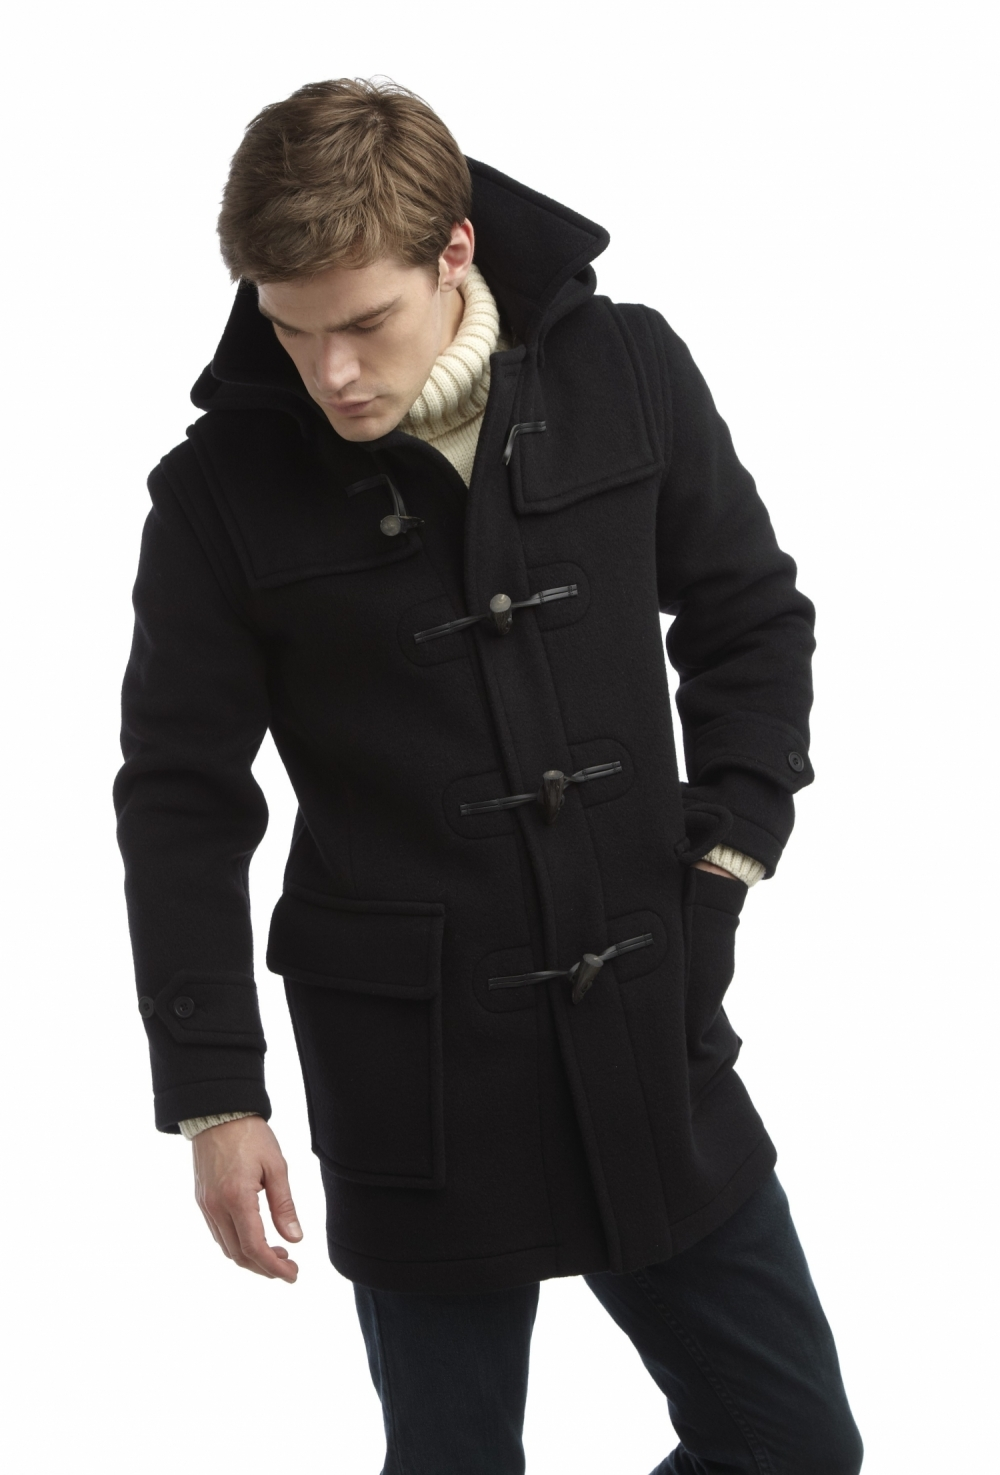 dsquared muts Dsquared Men Parka & Duffle Coats, Men Parka & Duffle Coats Dsquared2 Layered Coat,dsquared pet,ruime assortiment dsquared online,shopping guide Black layered coat from Dsquared2 featuring a crew neck, long sleeves, a snap button closure, side pockets, a drawstring hem and ribbed cuffs.